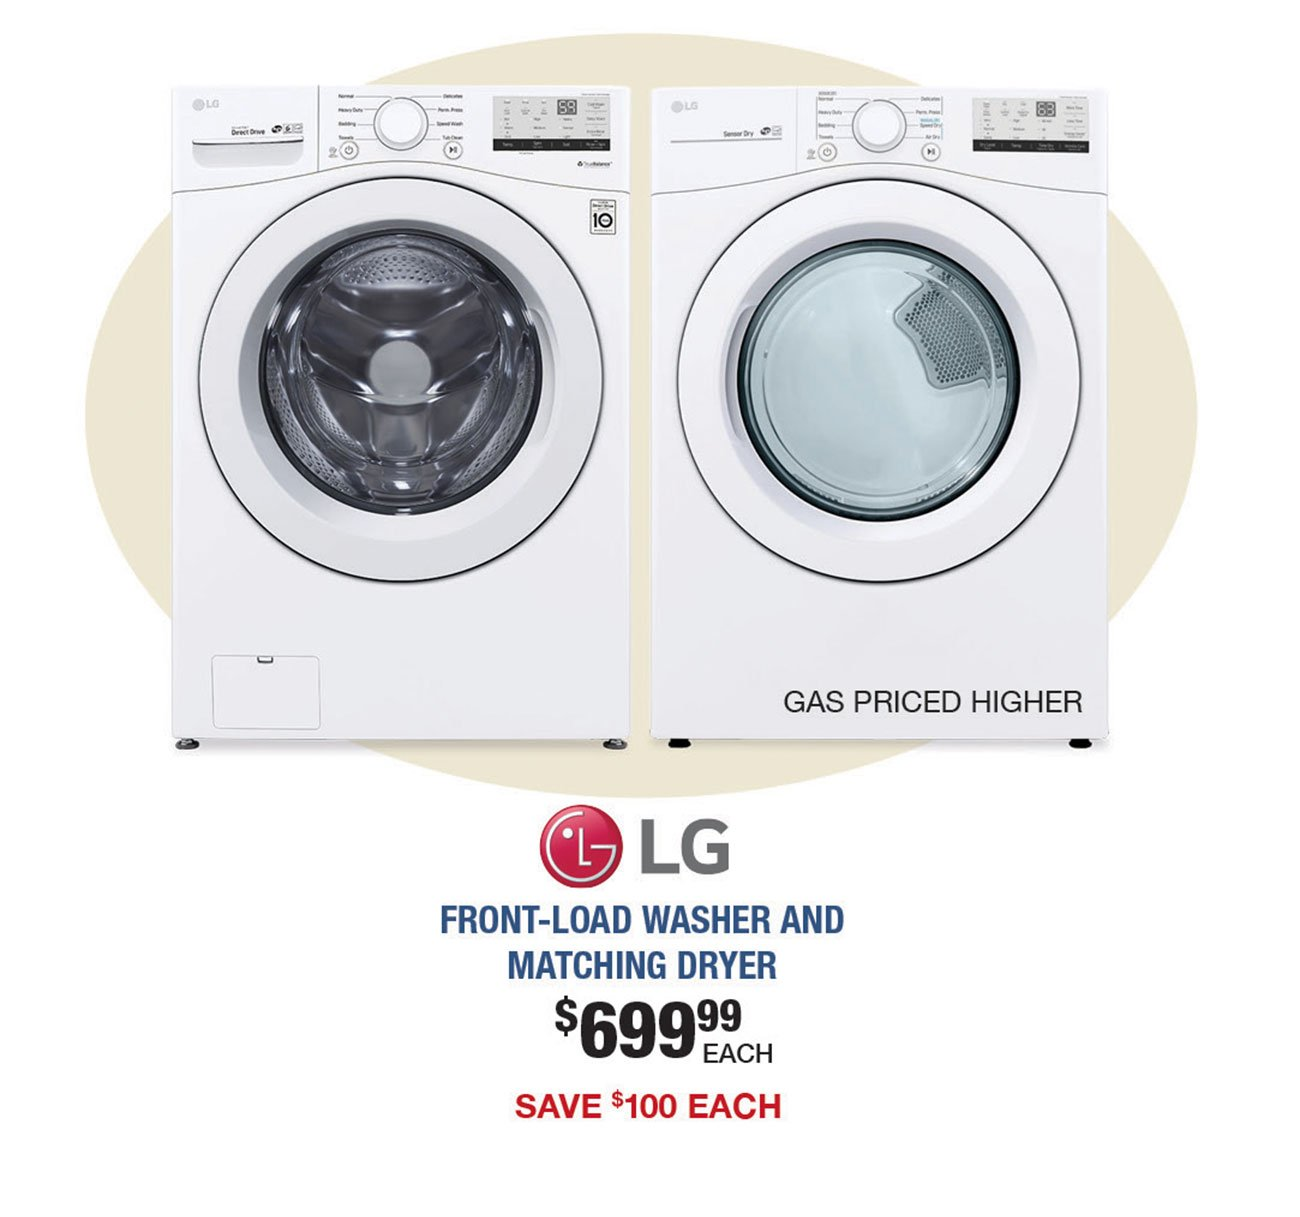 LG-Front-Load-Washer-Dryer-UIRV